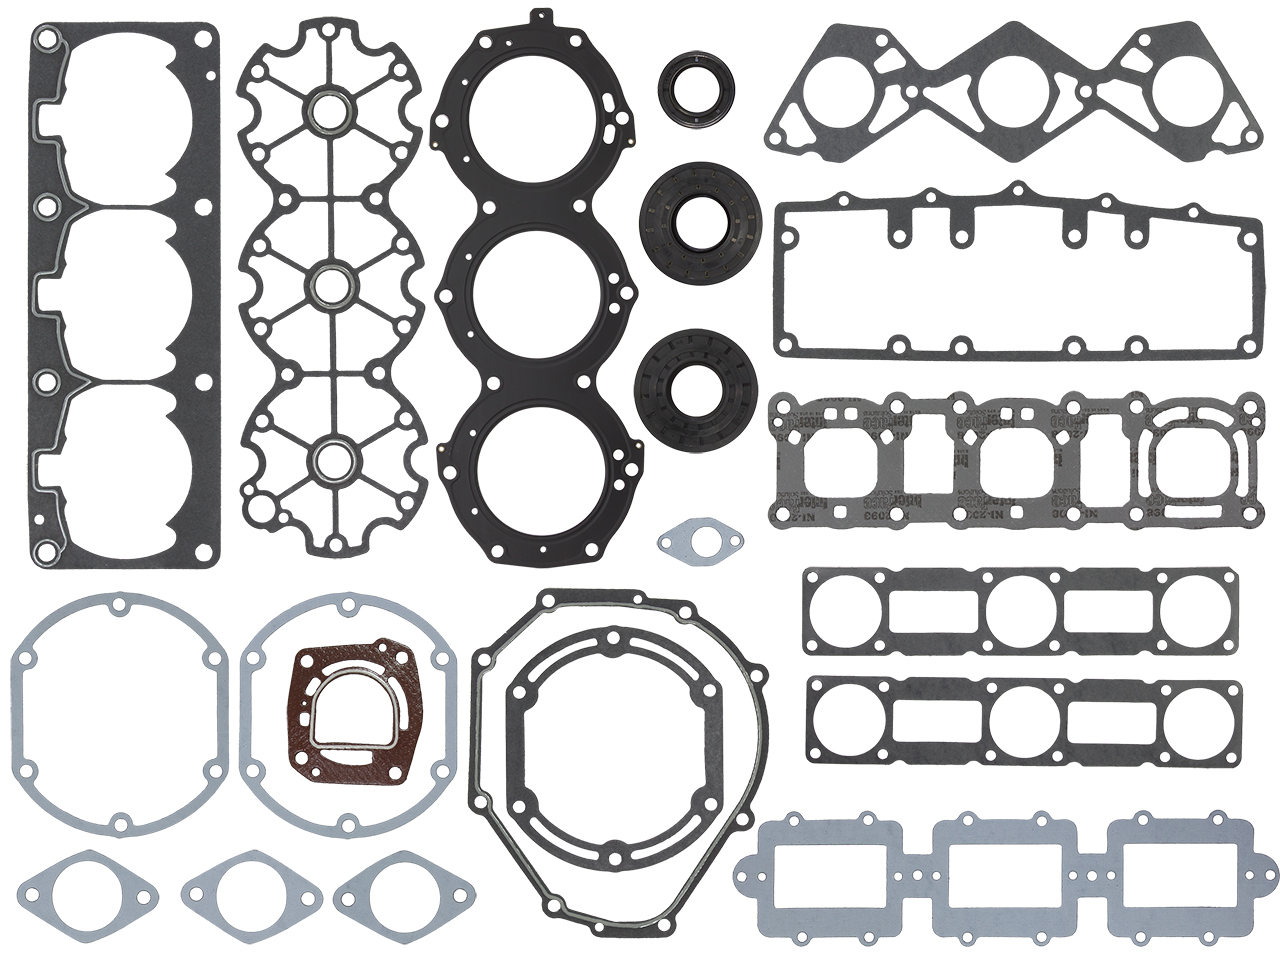 NAMURA COMPLETE GASKET KIT NW-40002F